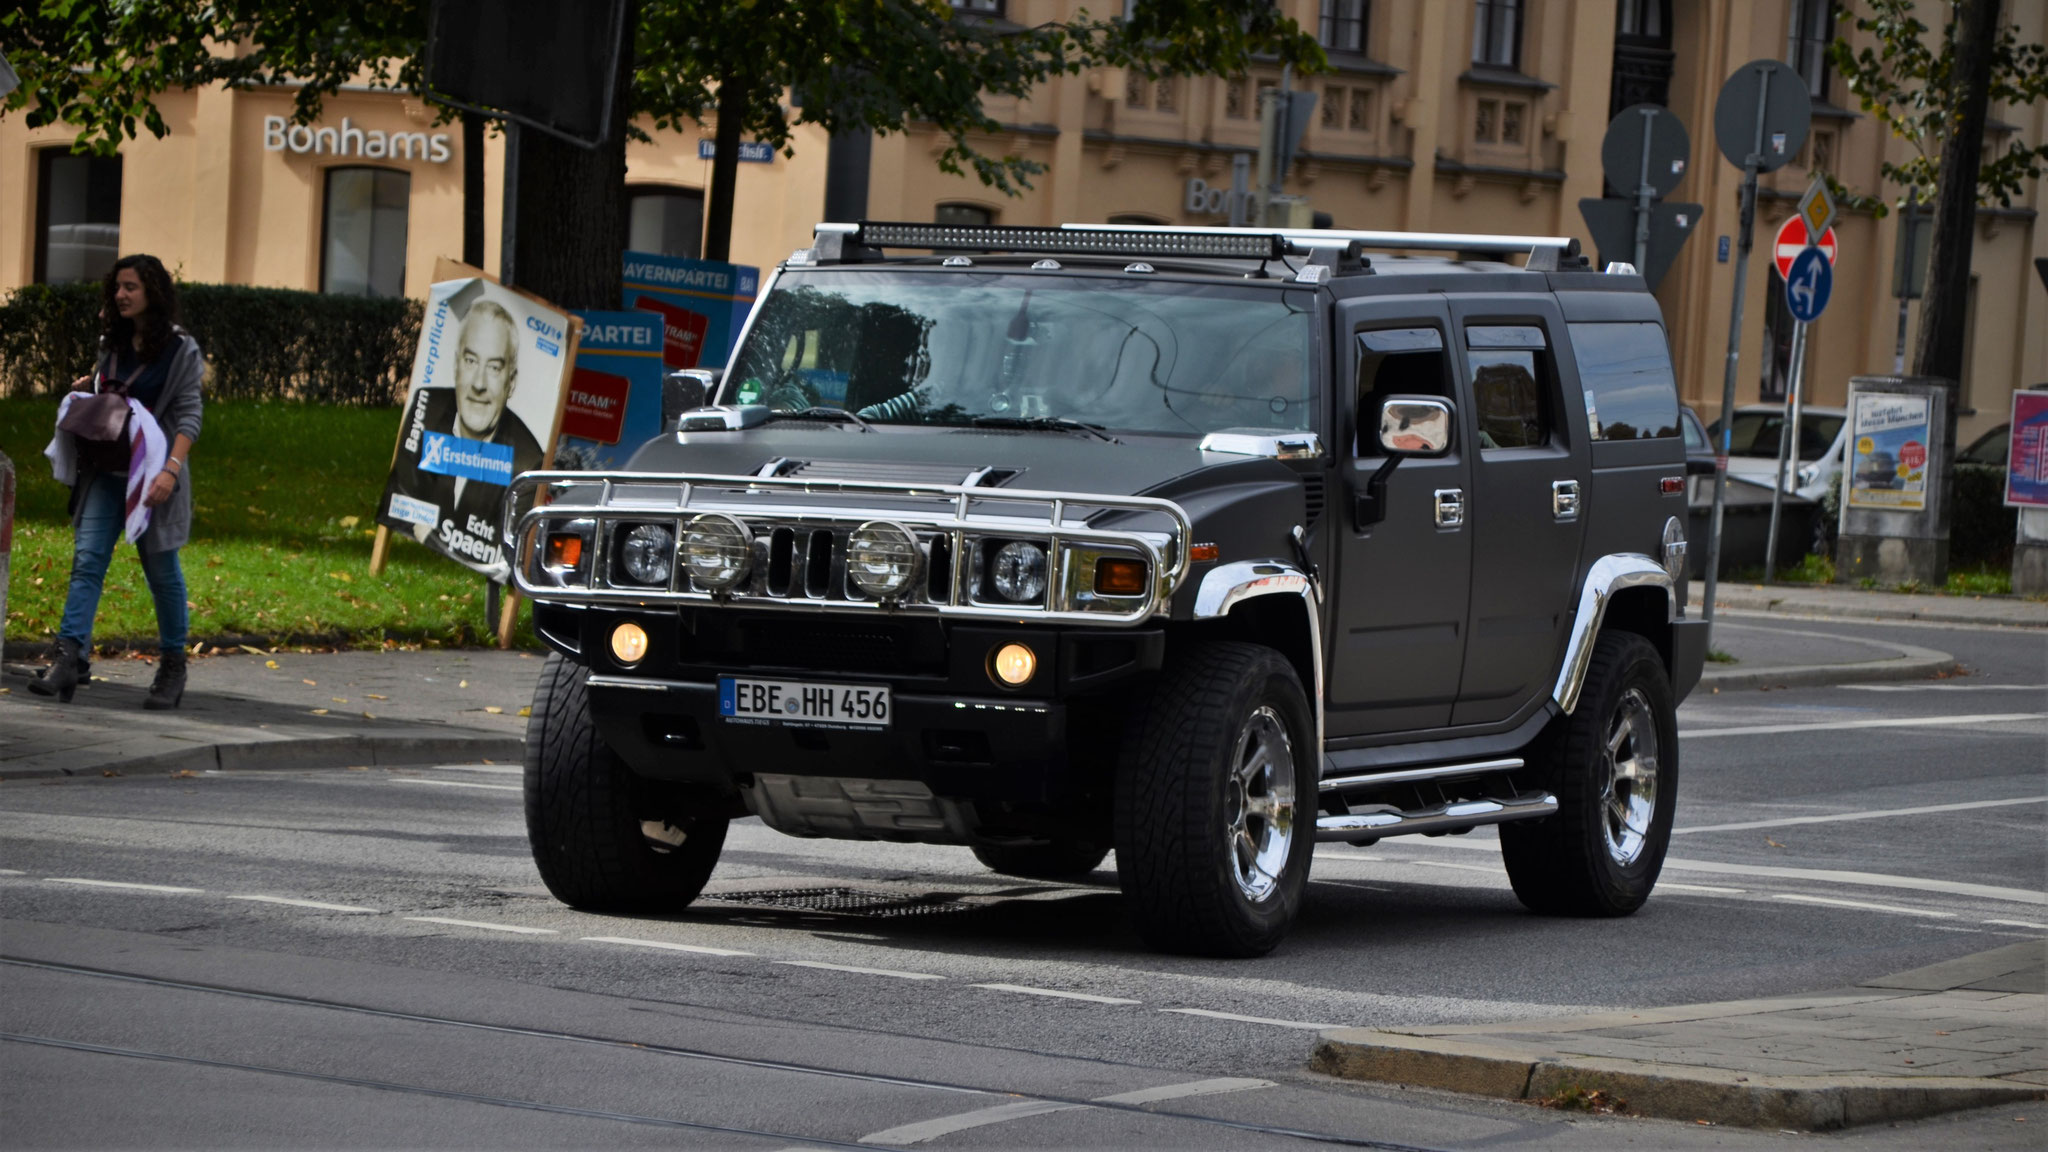 Hummer H2 - EBE-HH-456